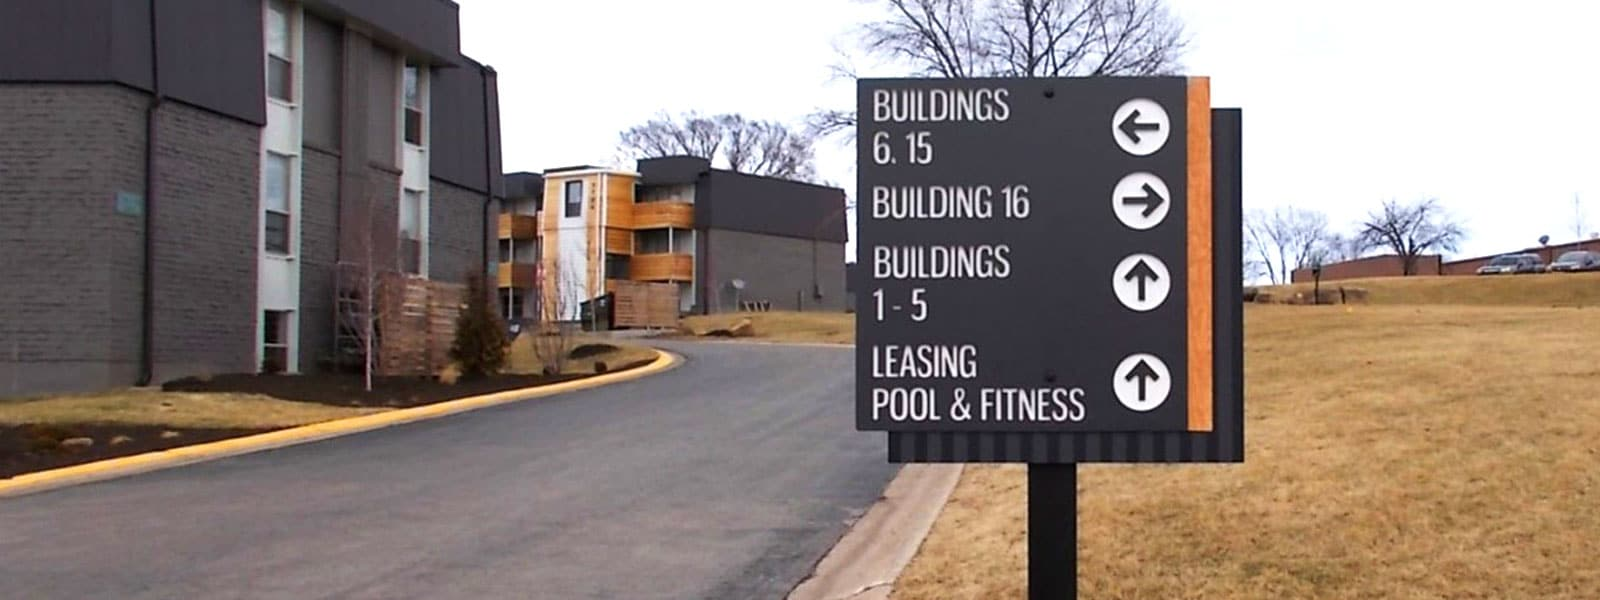 Wayfinding Directional Sign for Multifamily Property